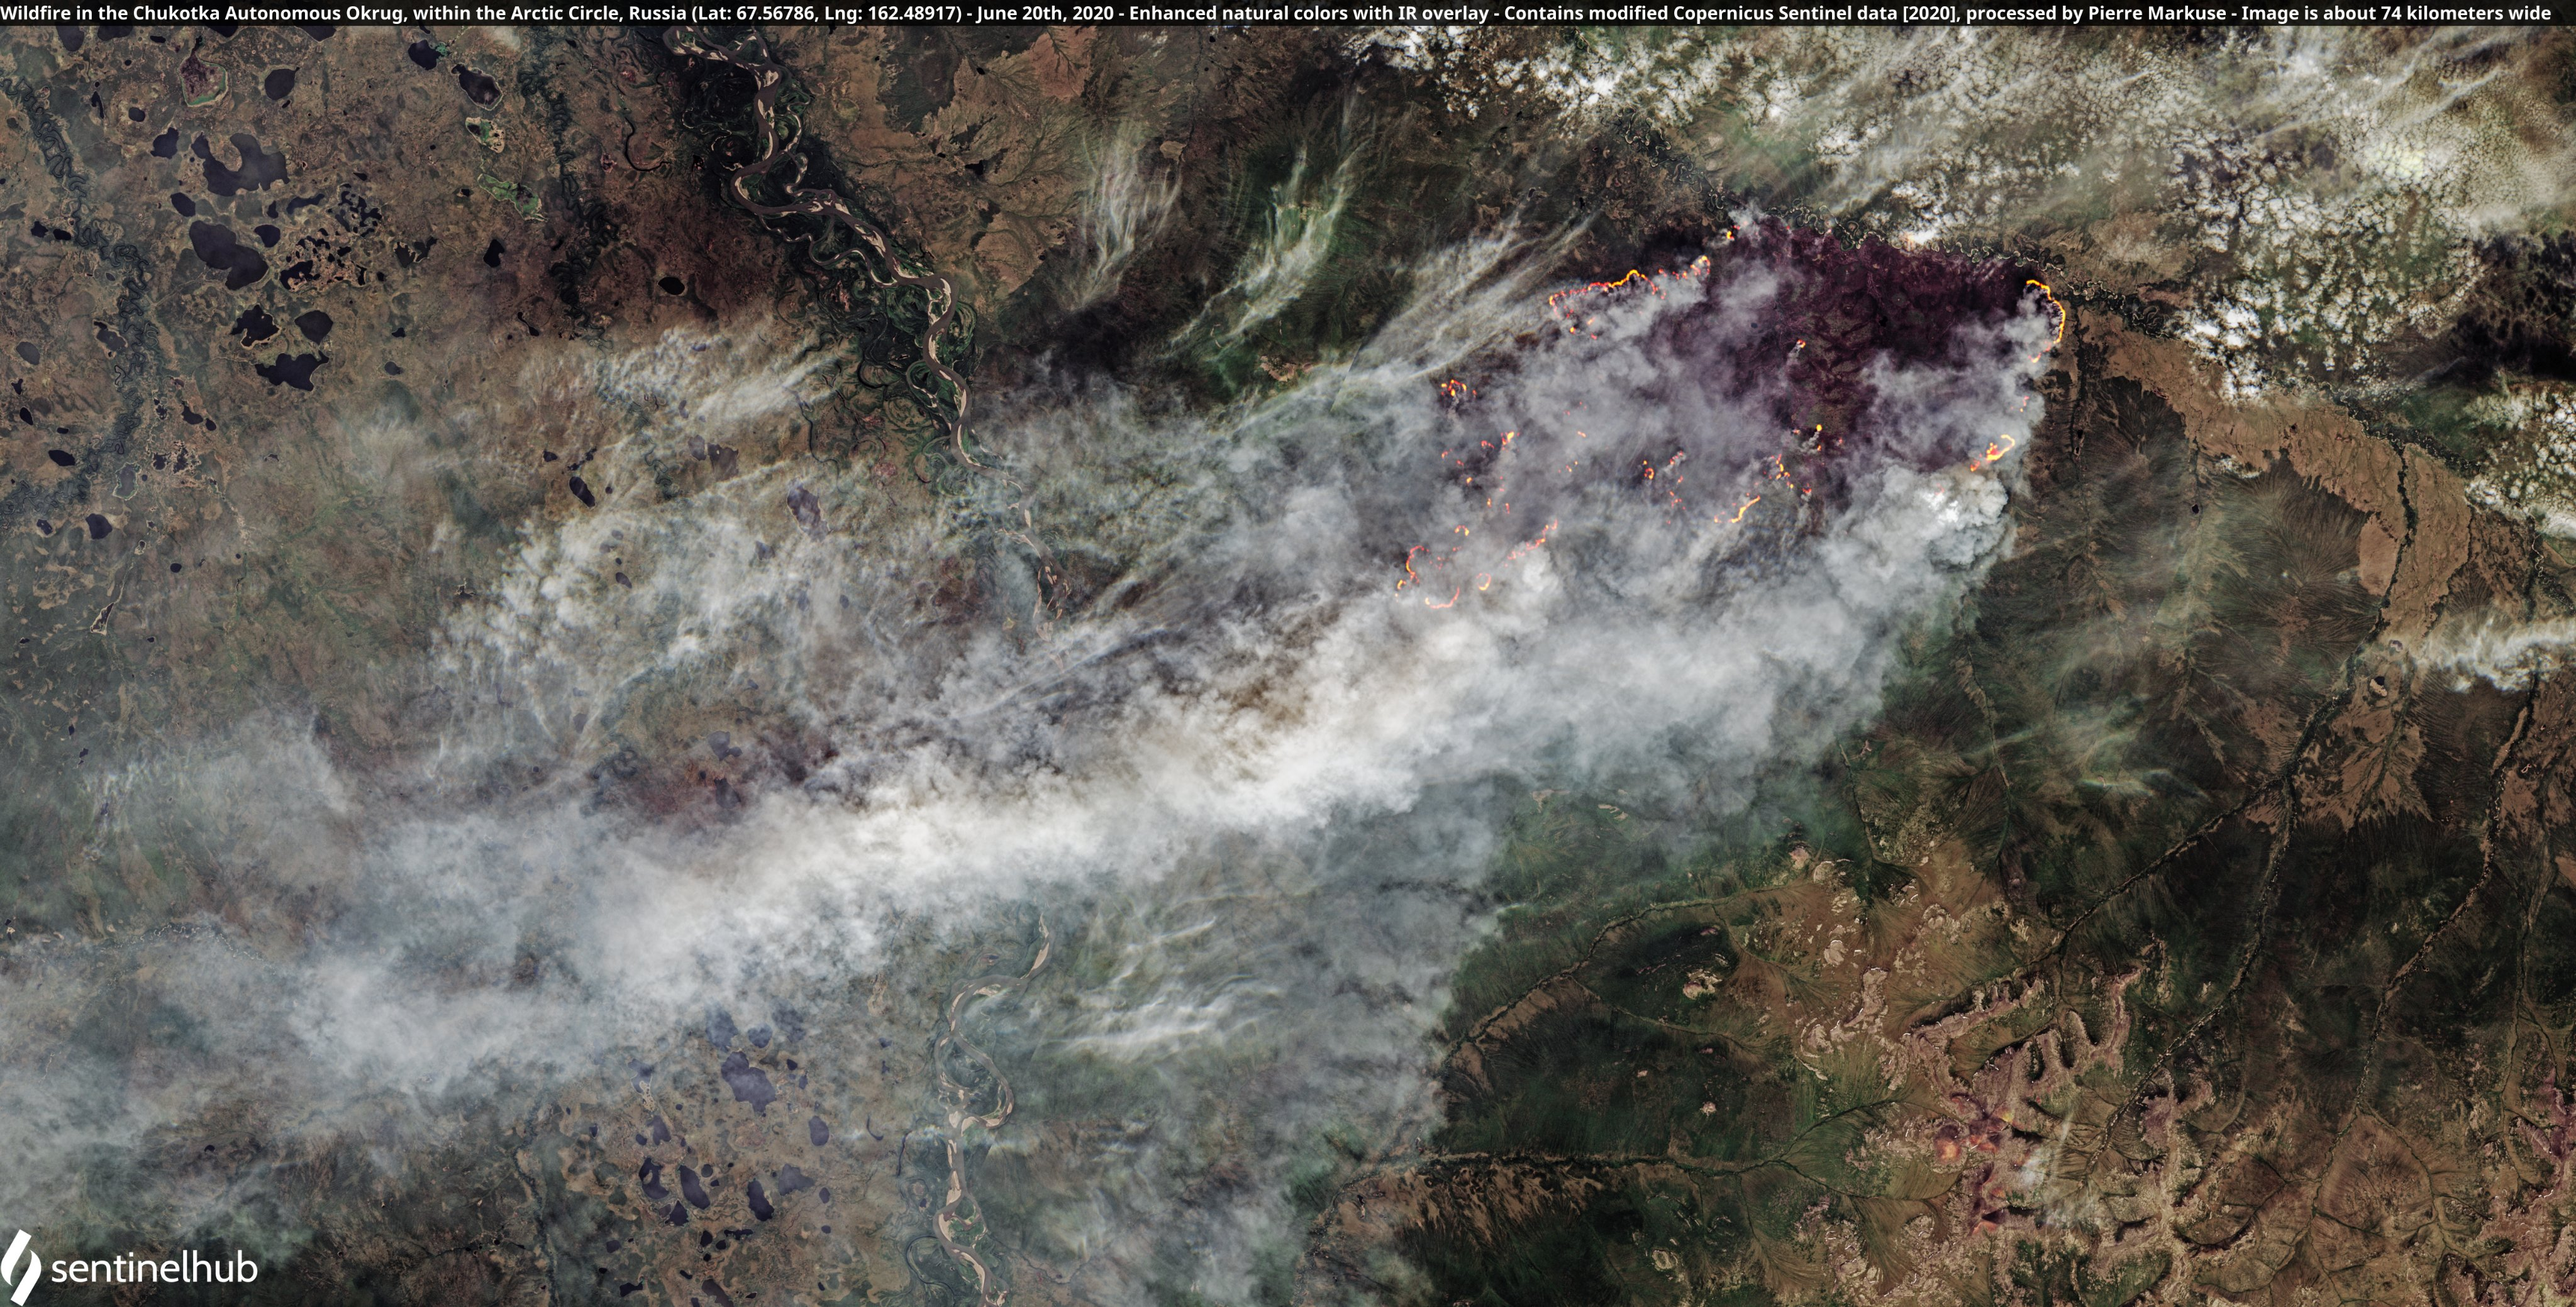 Satellite image of a wildfire in Chukotka, Russia. Copernicus/Pierre Markuse